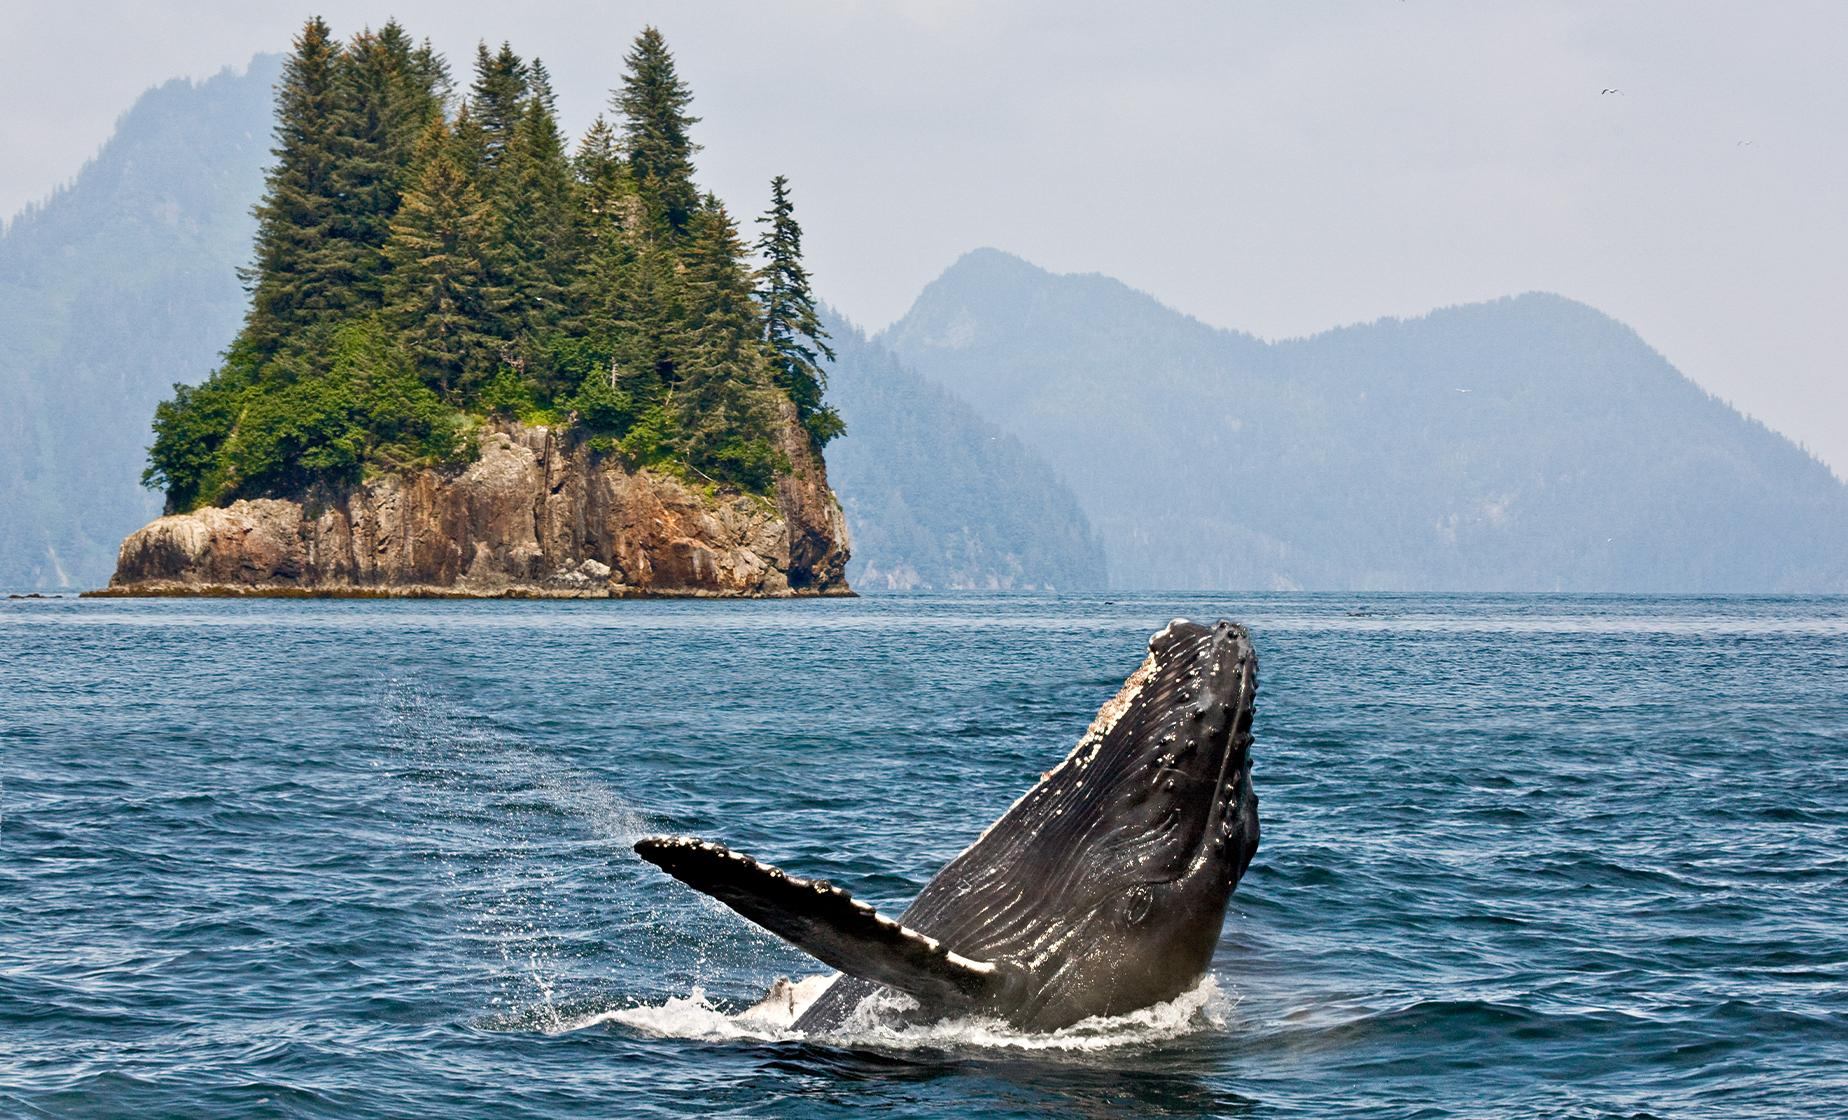 Whale Watching and Marine Wildlife